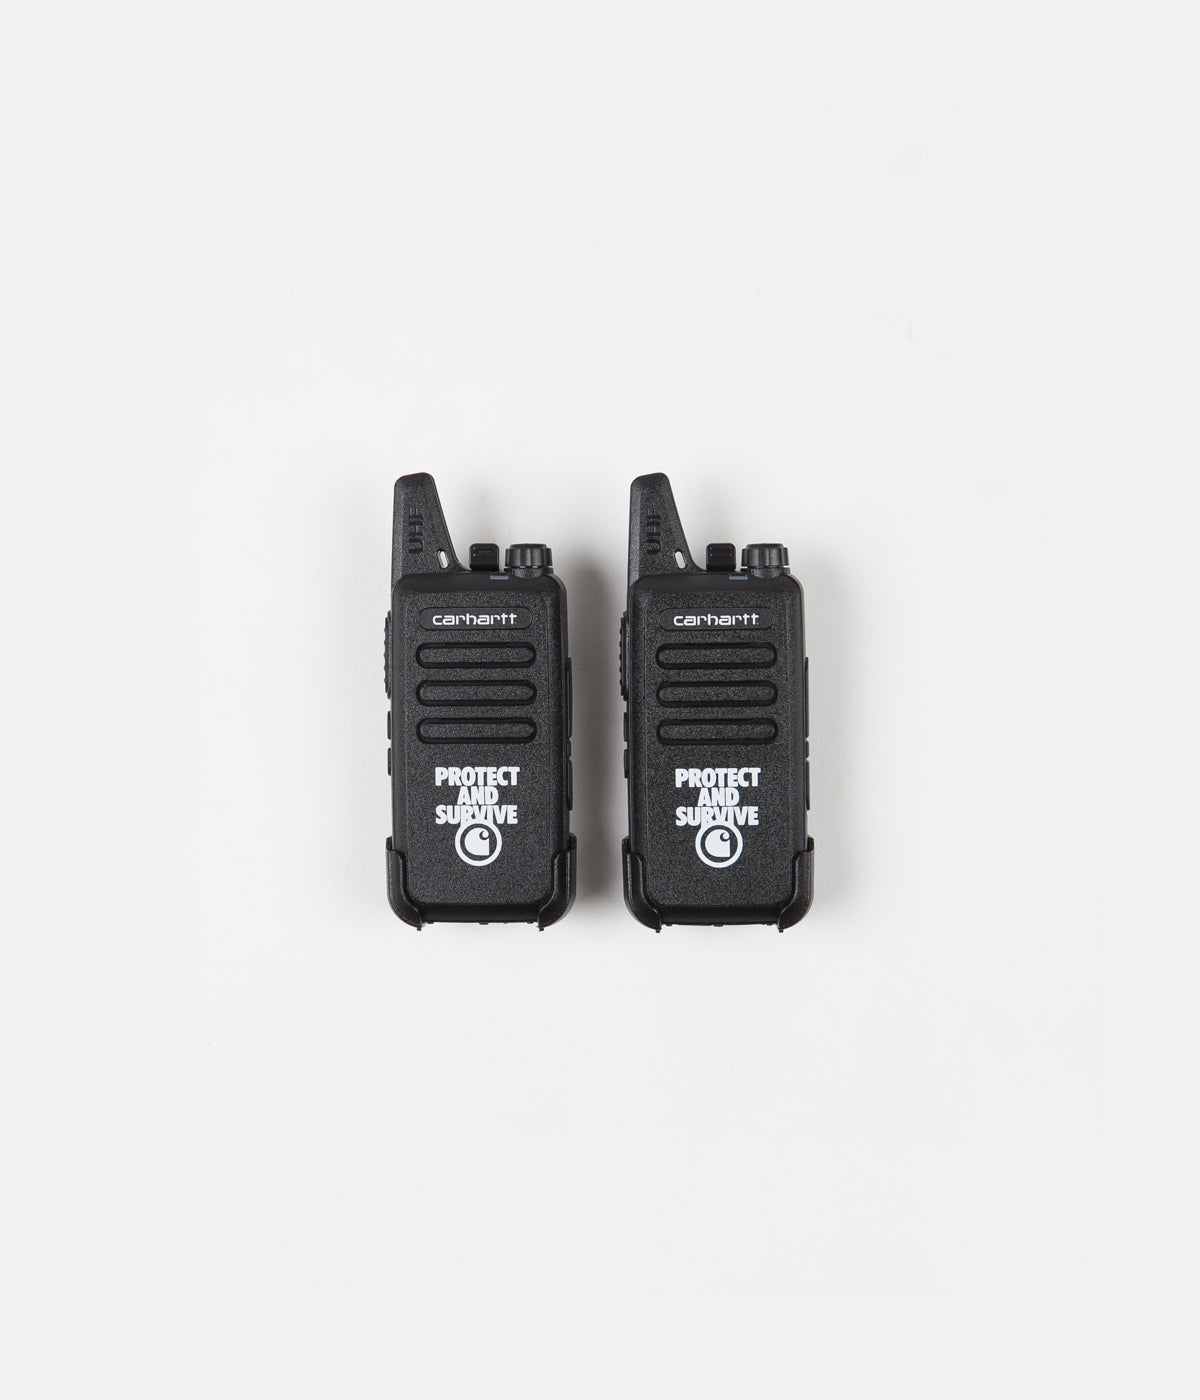 Carhartt Protect and Survive Walkie Talkie Set  - Cypress